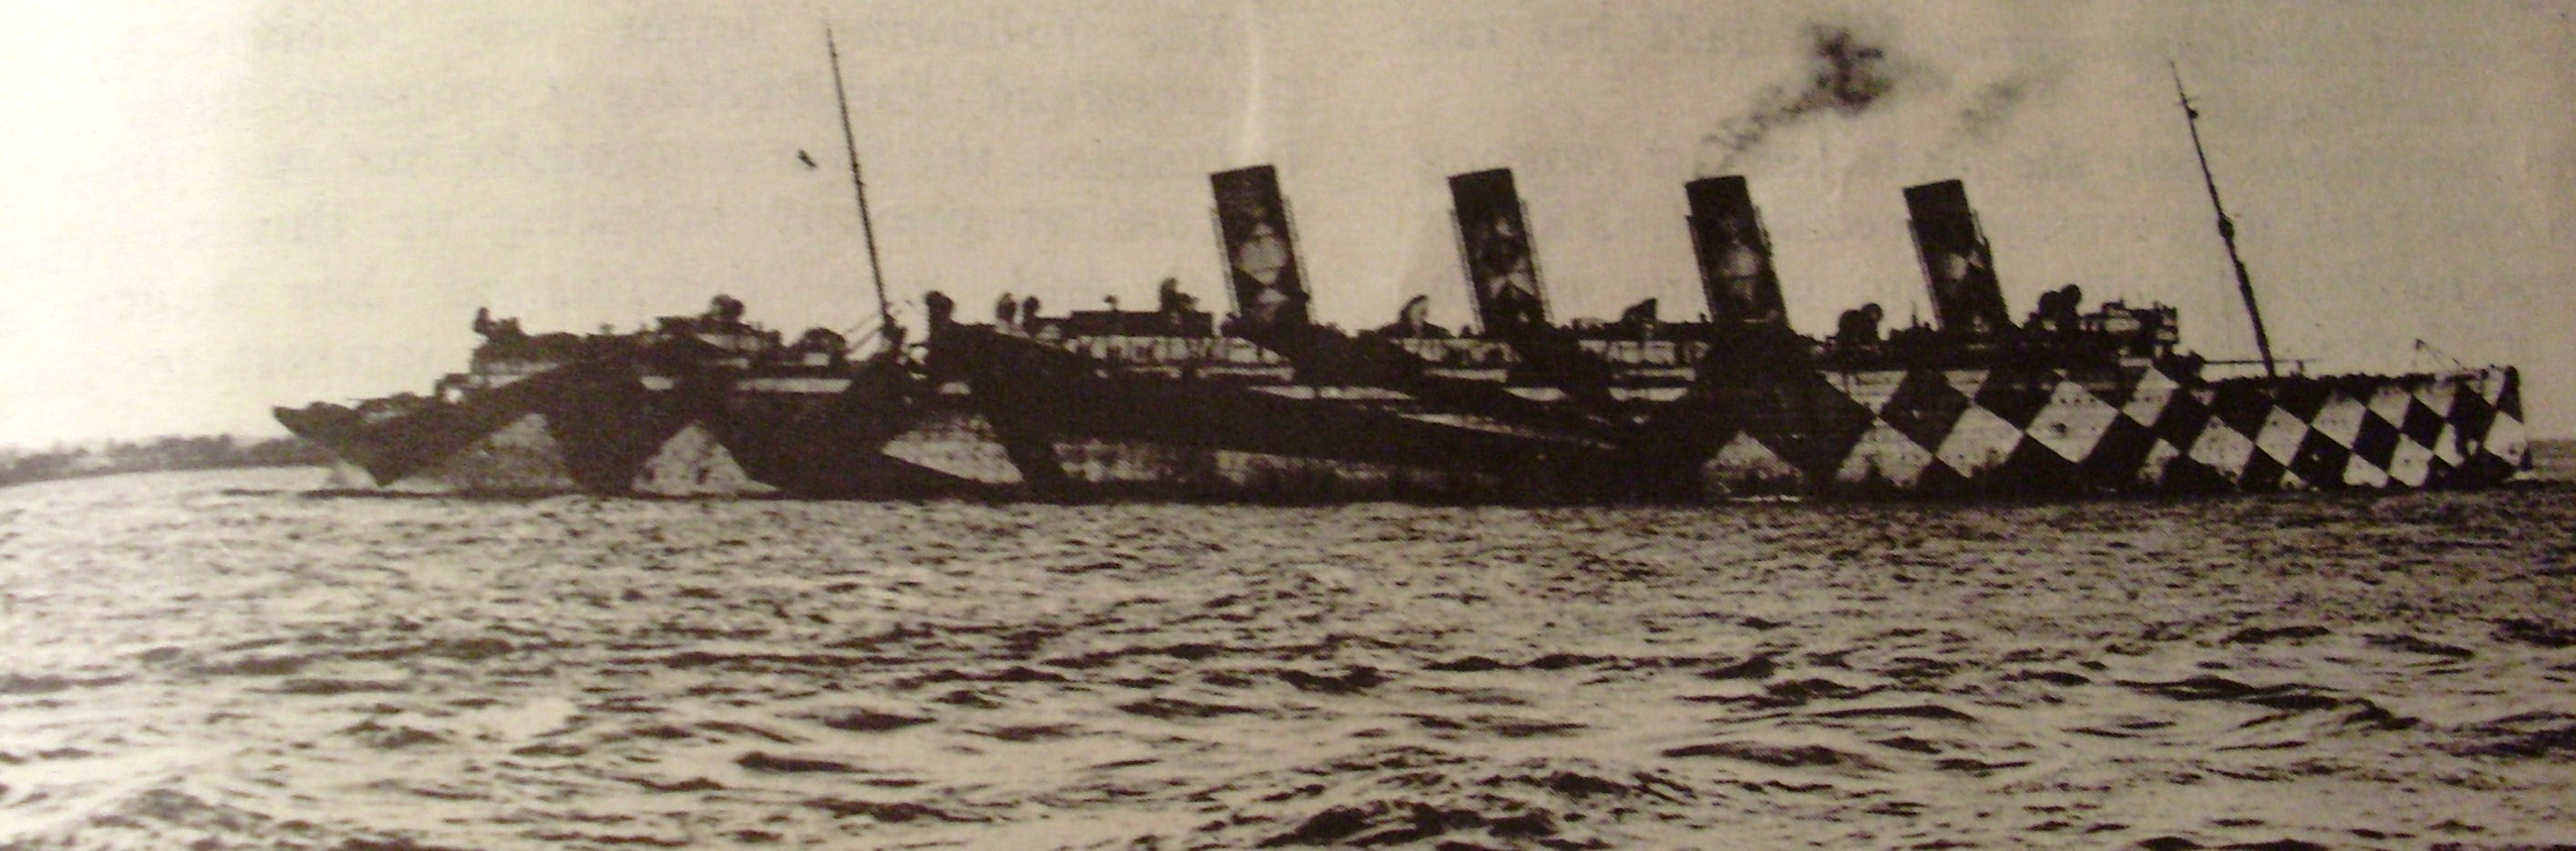 HMT Mauretania with her second geometric dazzle scheme designed by Norman Wilkinson